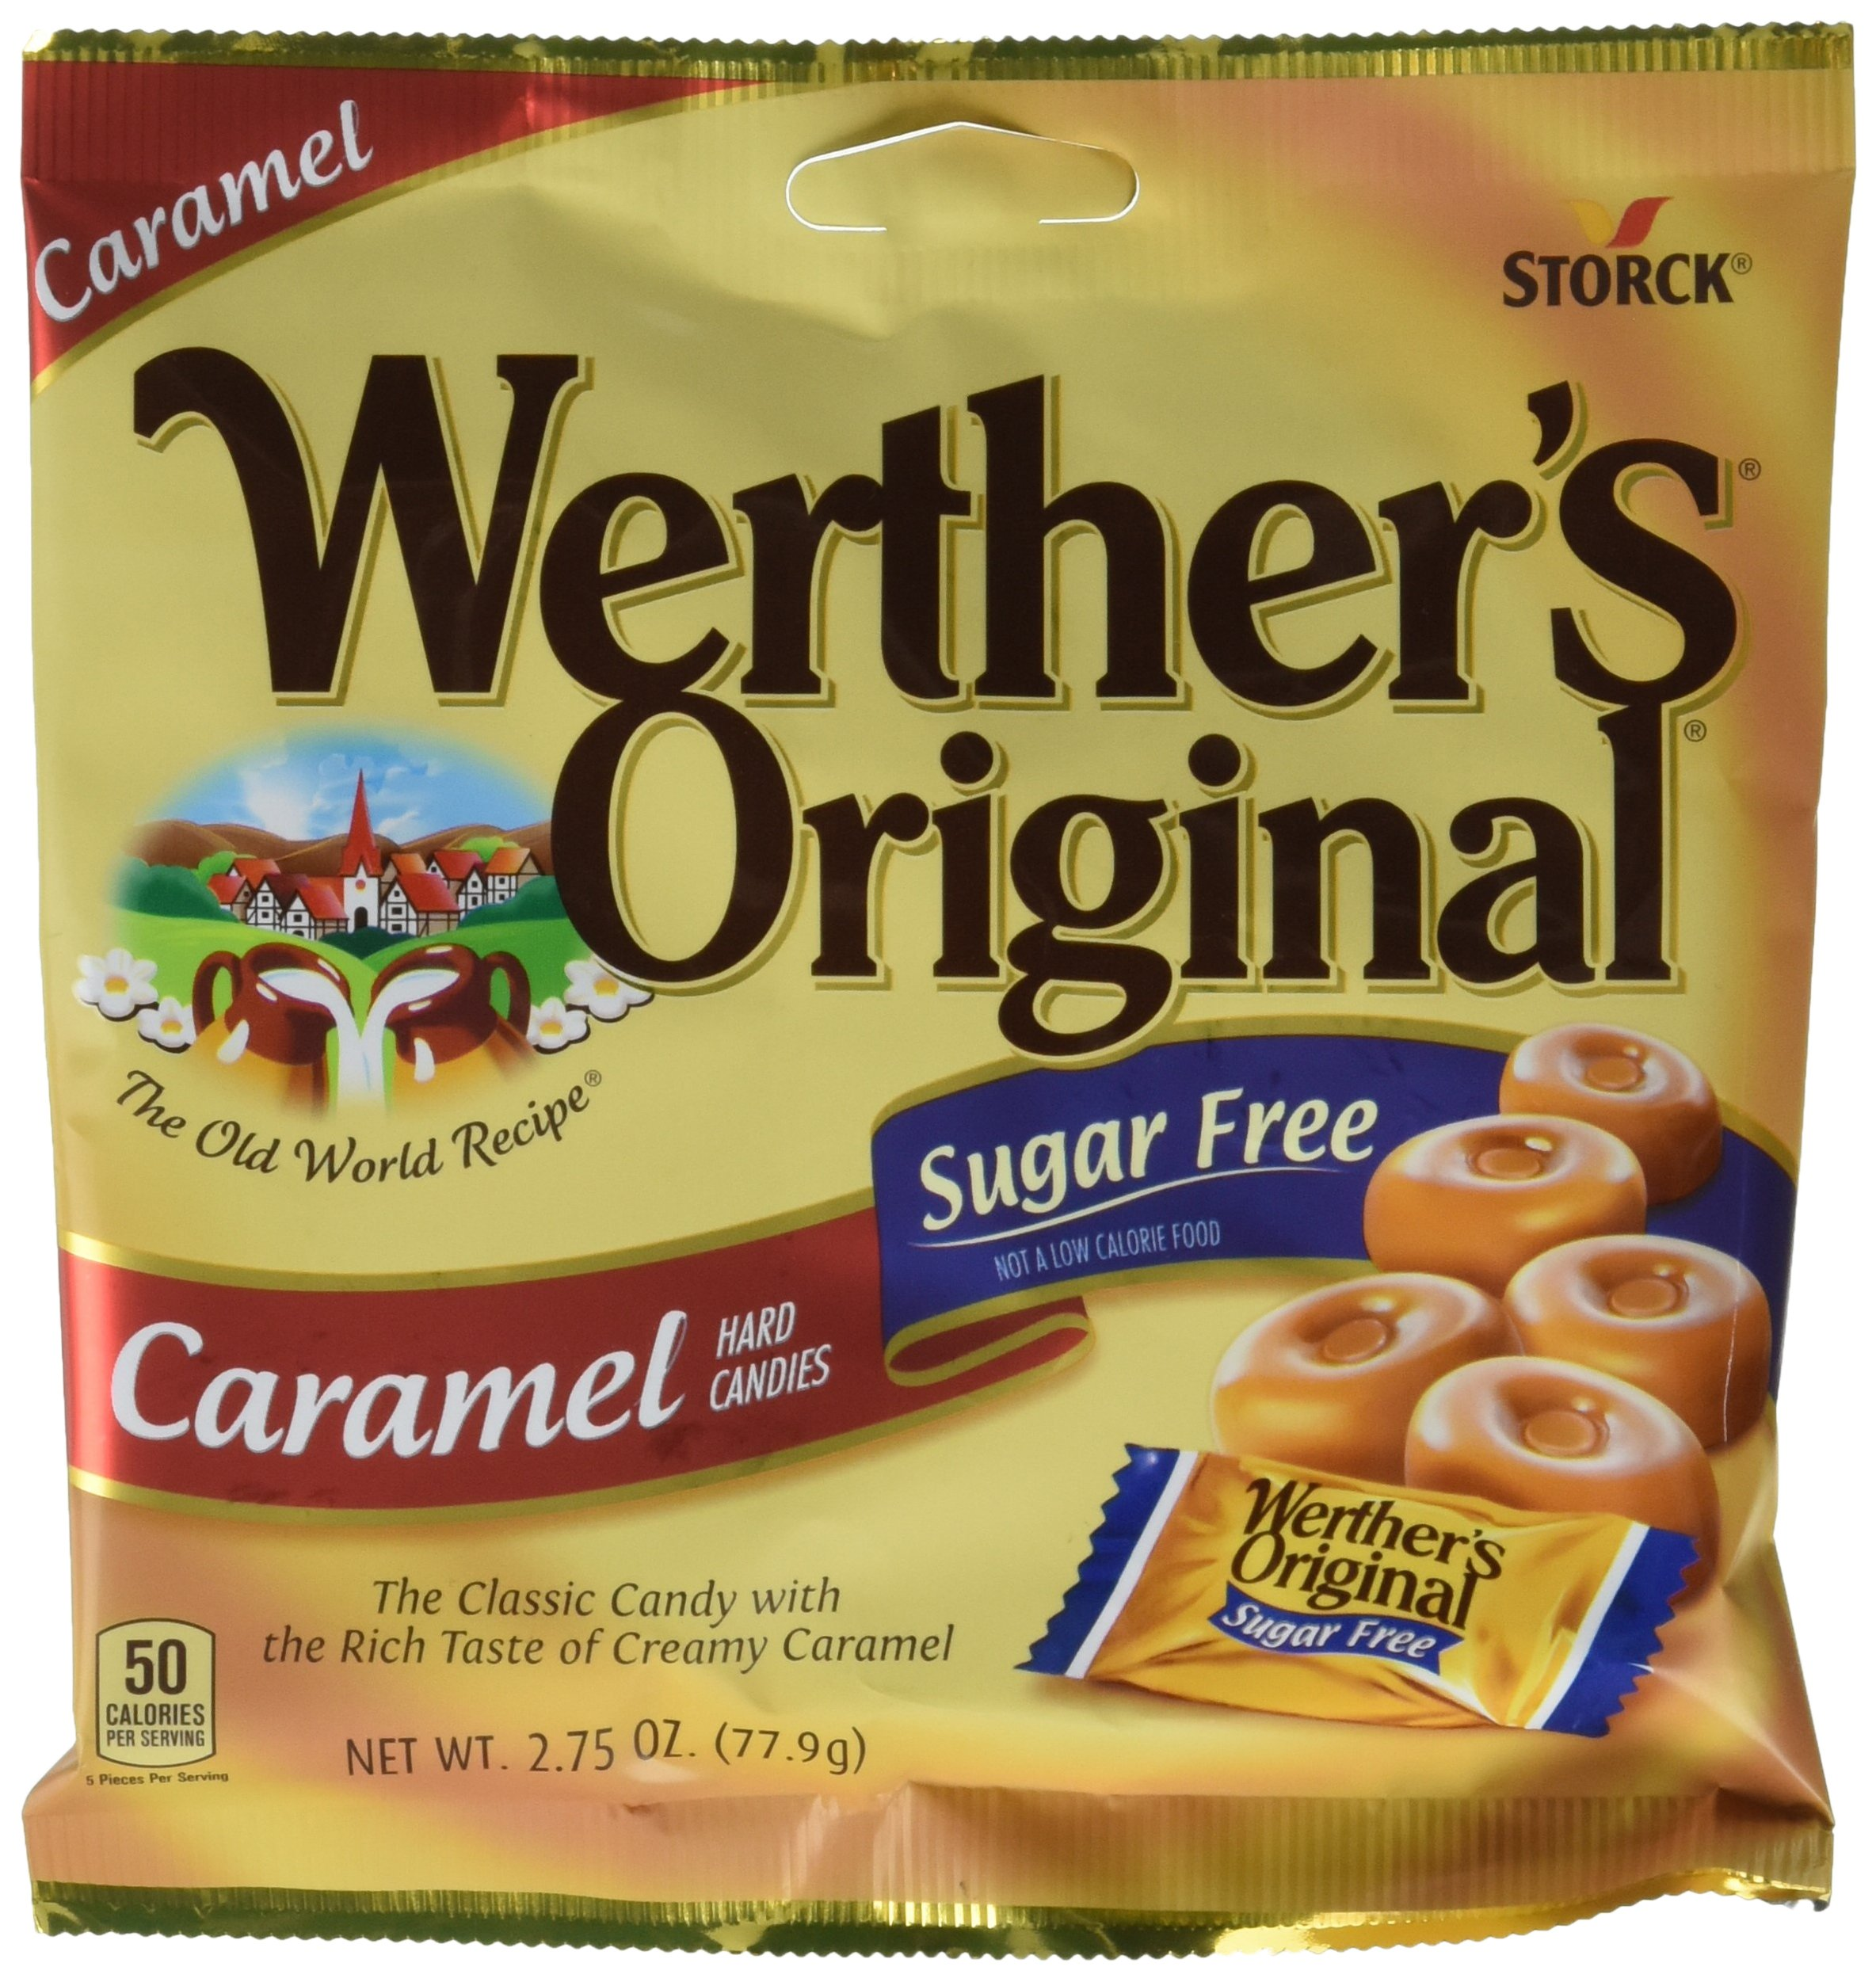 Werthers Original Sugar Free Caramel Hard Candies 12 Pack by Werther's